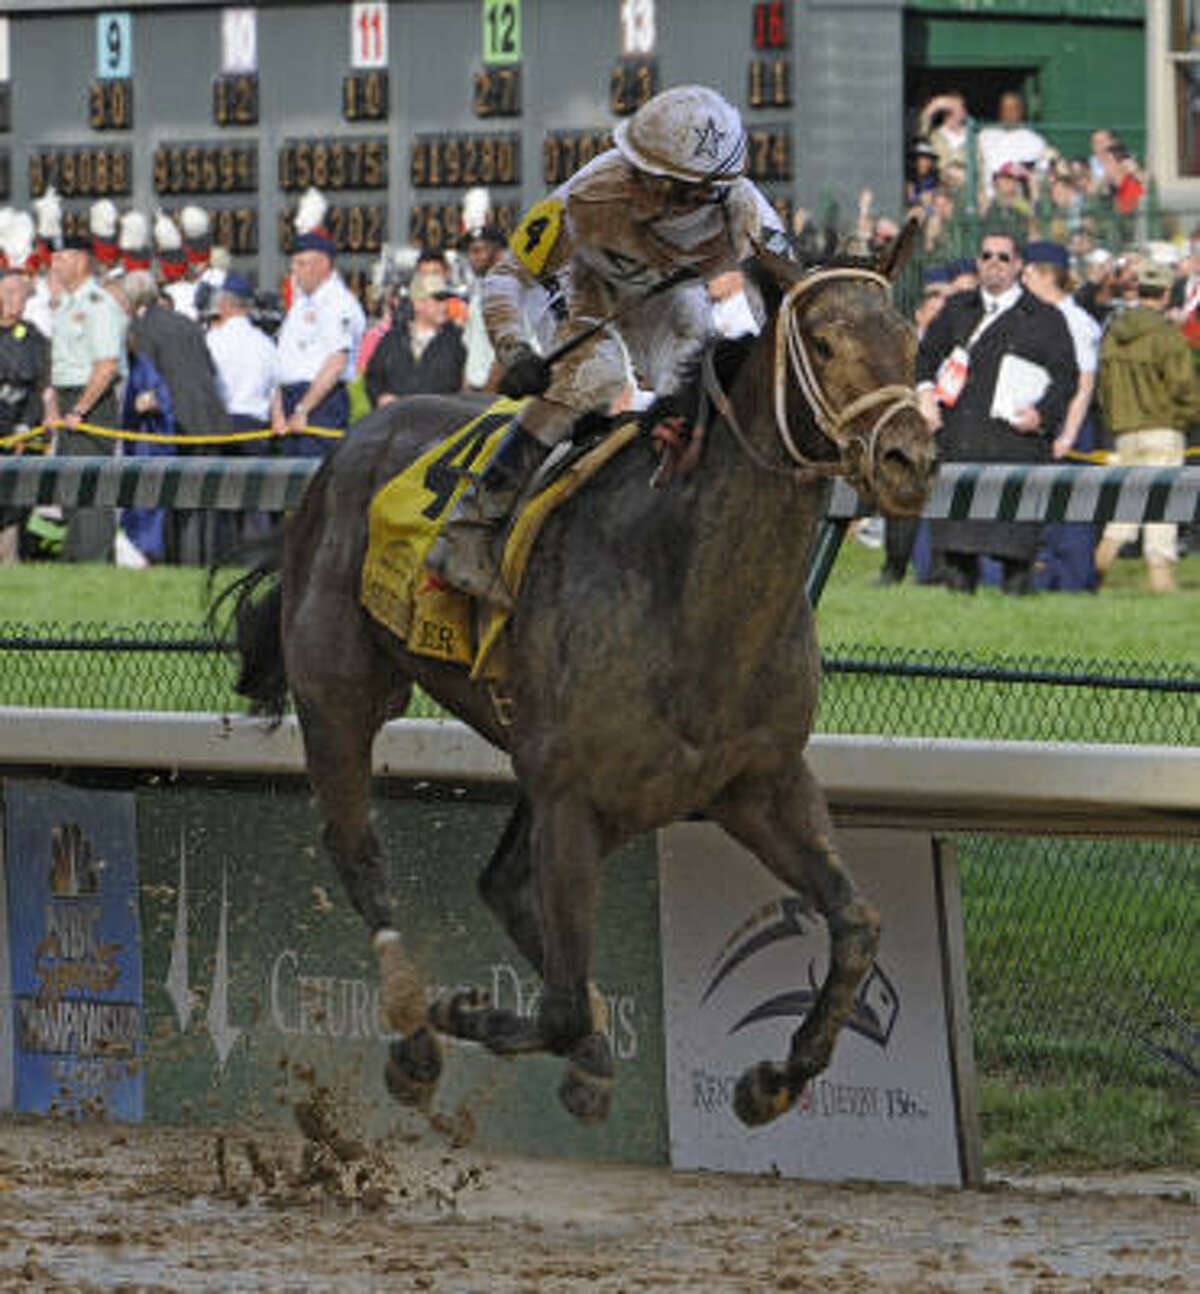 Jockey Calvin Borel rode Super Saver to his third Kentucky Derby win in four years Saturday at Churchill Downs in Louisville, Ky.